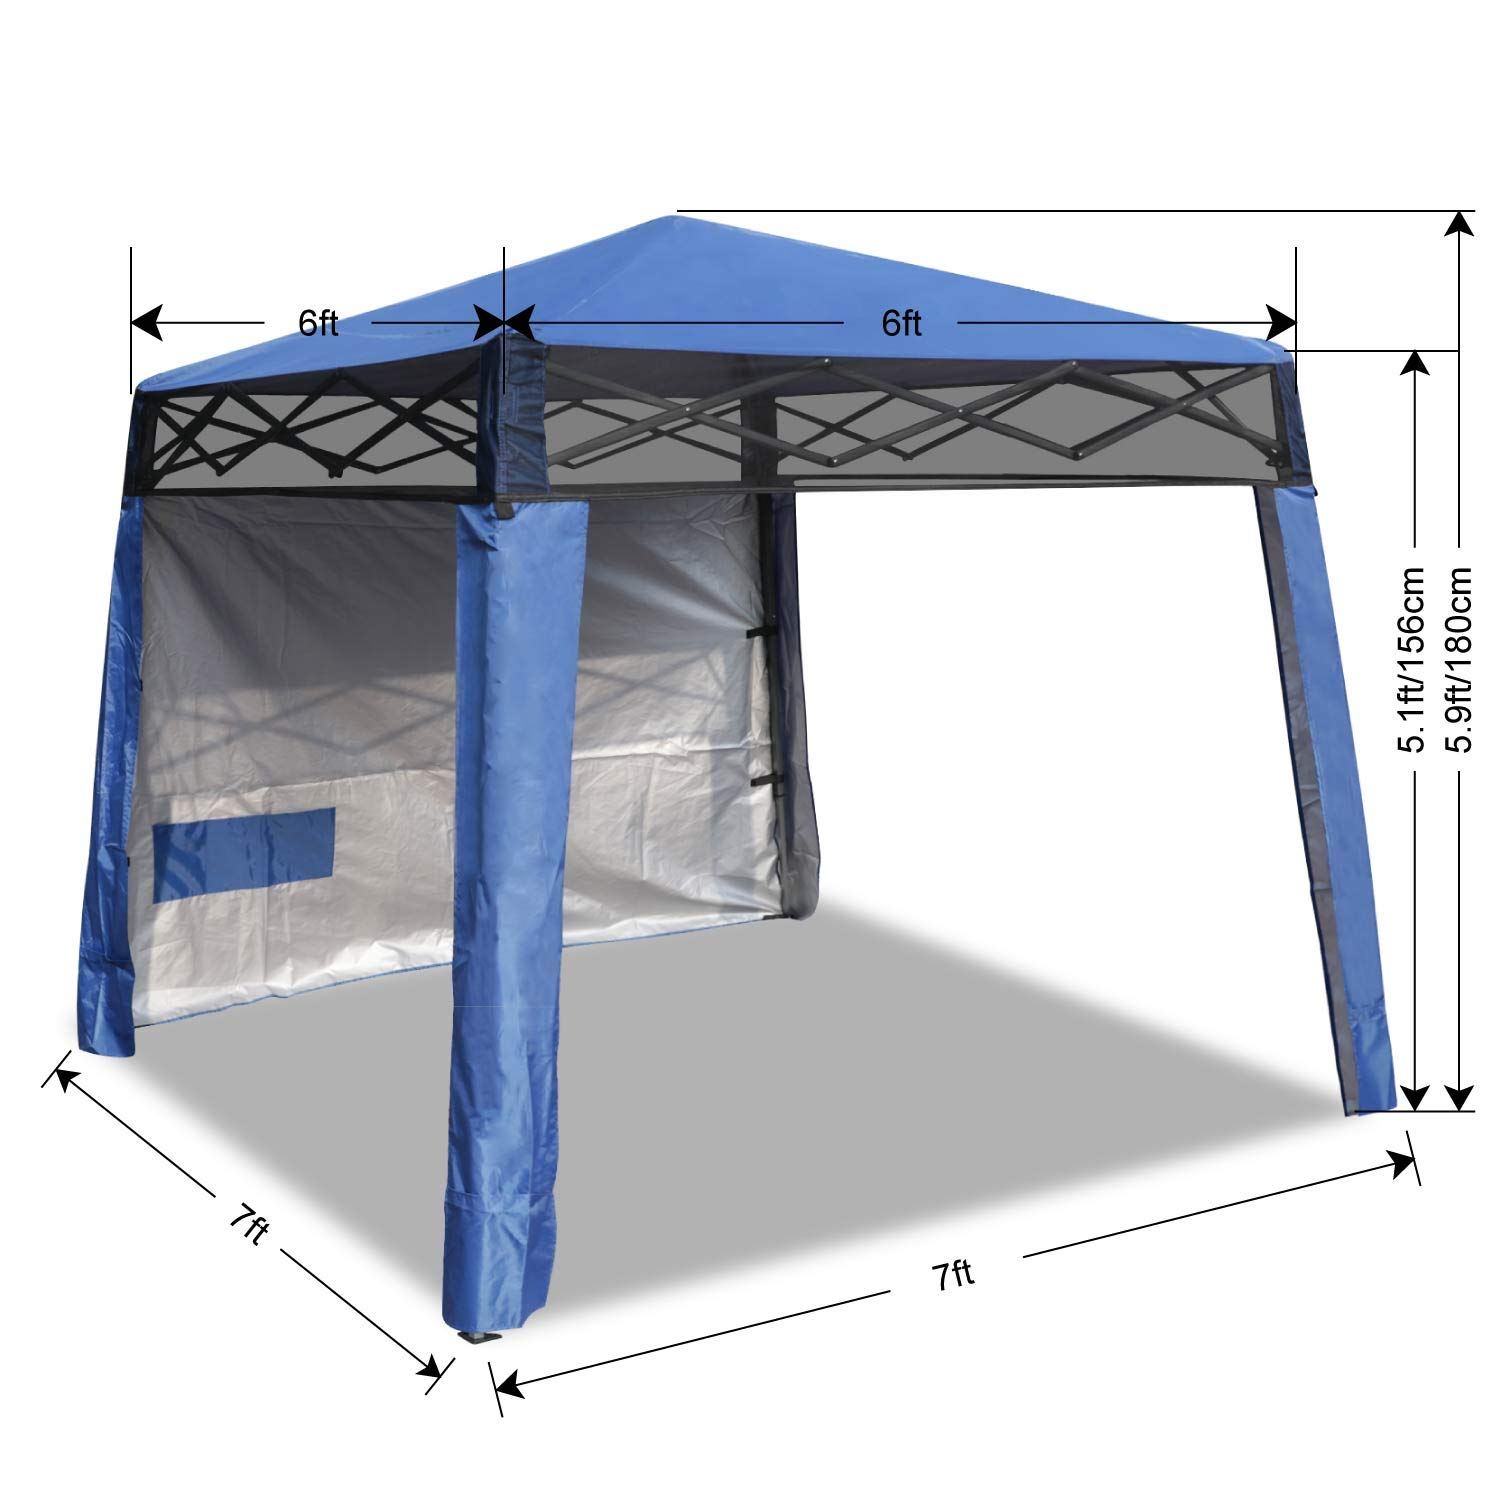 ABCCANOPY Beach Canopy Popup Canopy Tent Super Compact Canopy Tent 10x10 Canopy Sun Shelter 8x8 Canopy Outdoor 6x6 Instant Shelter,6FTX6FT,Royal Blue